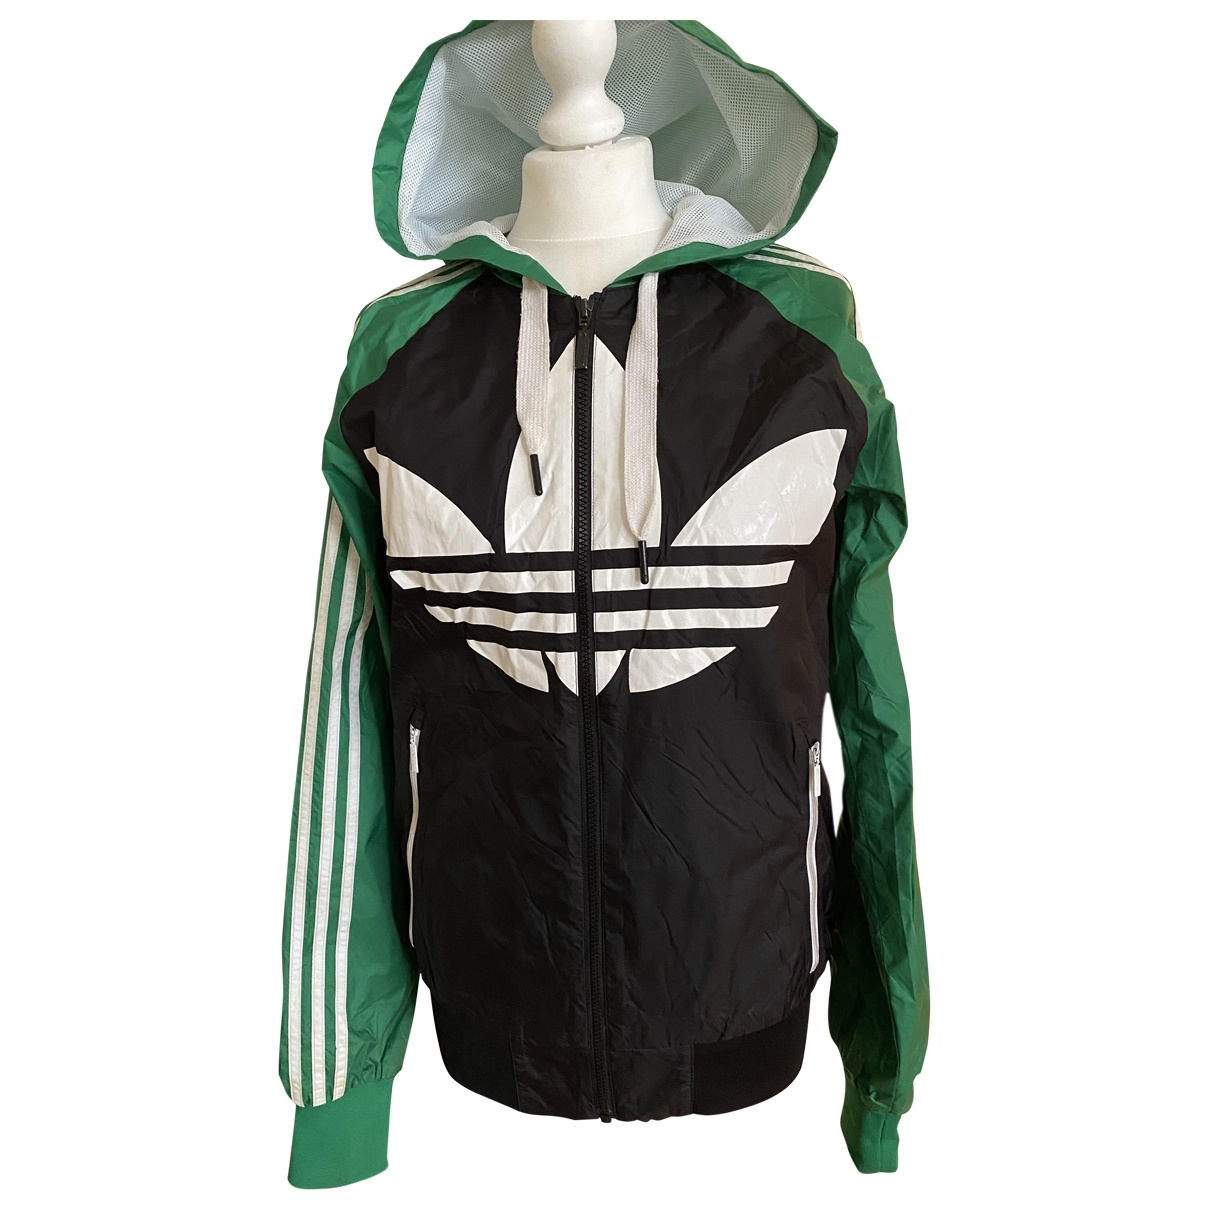 Adidas \N Multicolour jacket  for Men S International